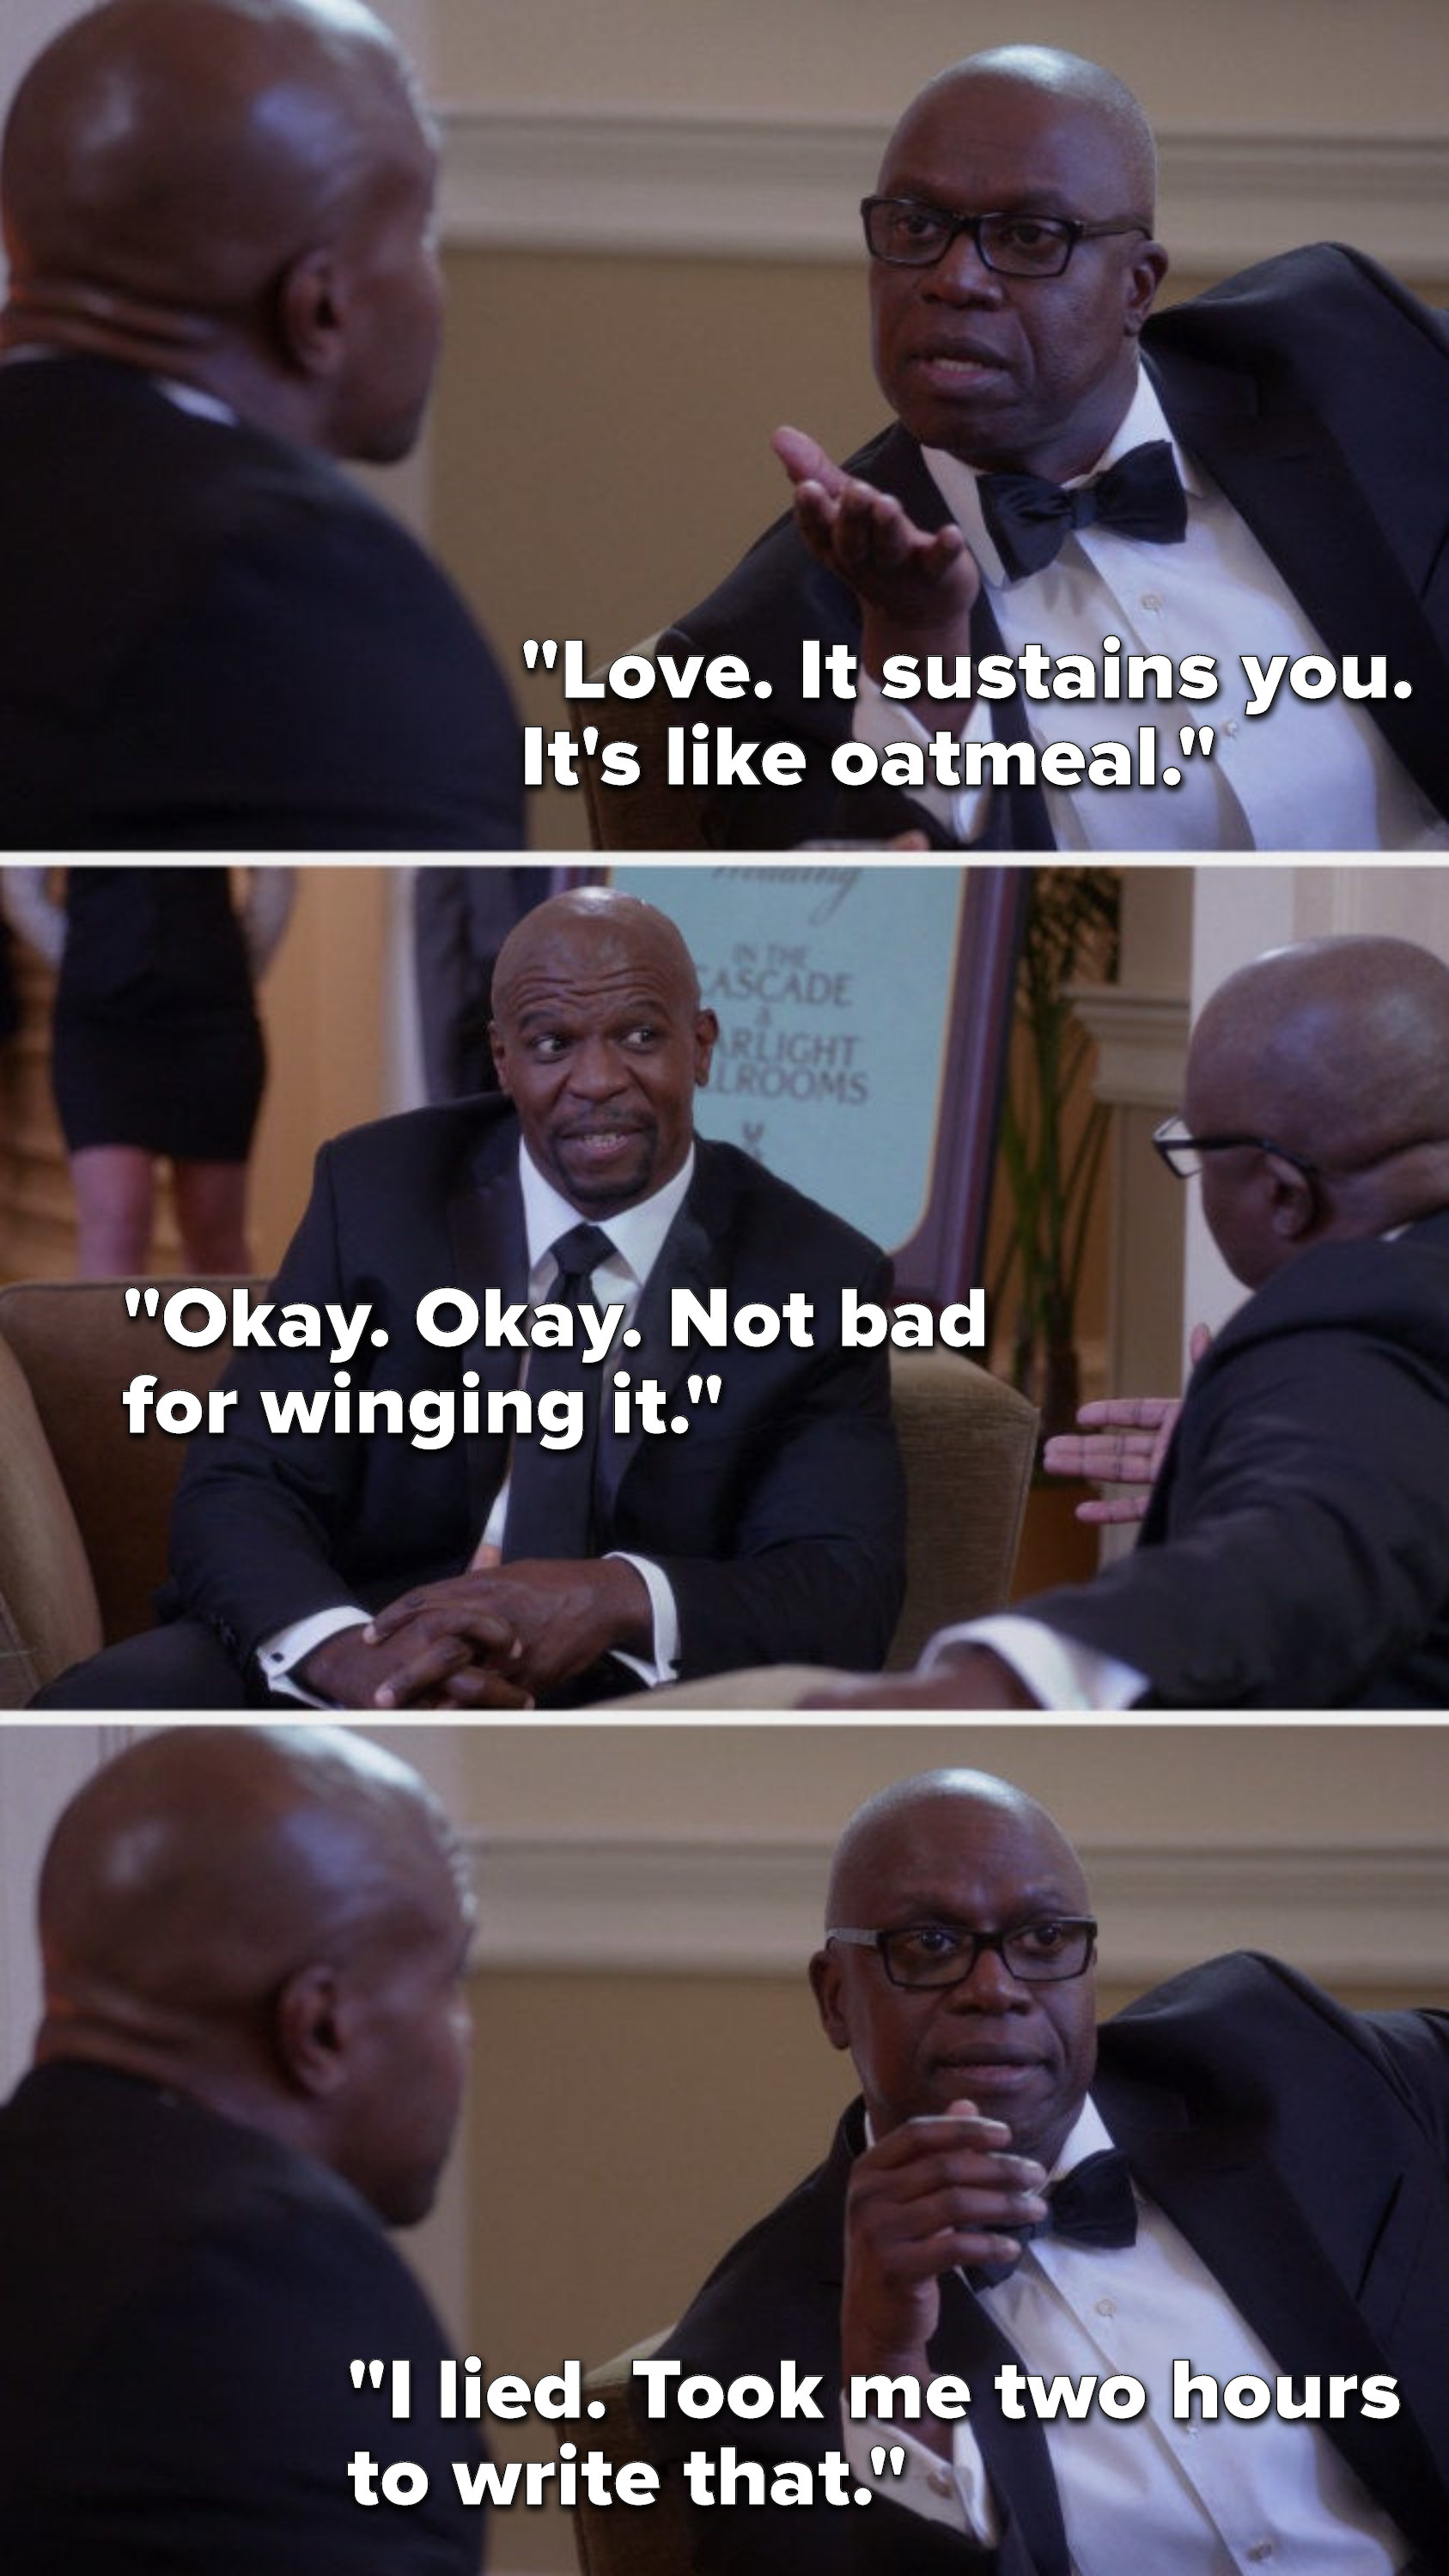 """Holt says, """"Love, it sustains you, it's like oatmeal,"""" Terry says, """"Okay, okay, not bad for winging it,"""" and Holt says, """"I lied, took me two hours to write that"""""""